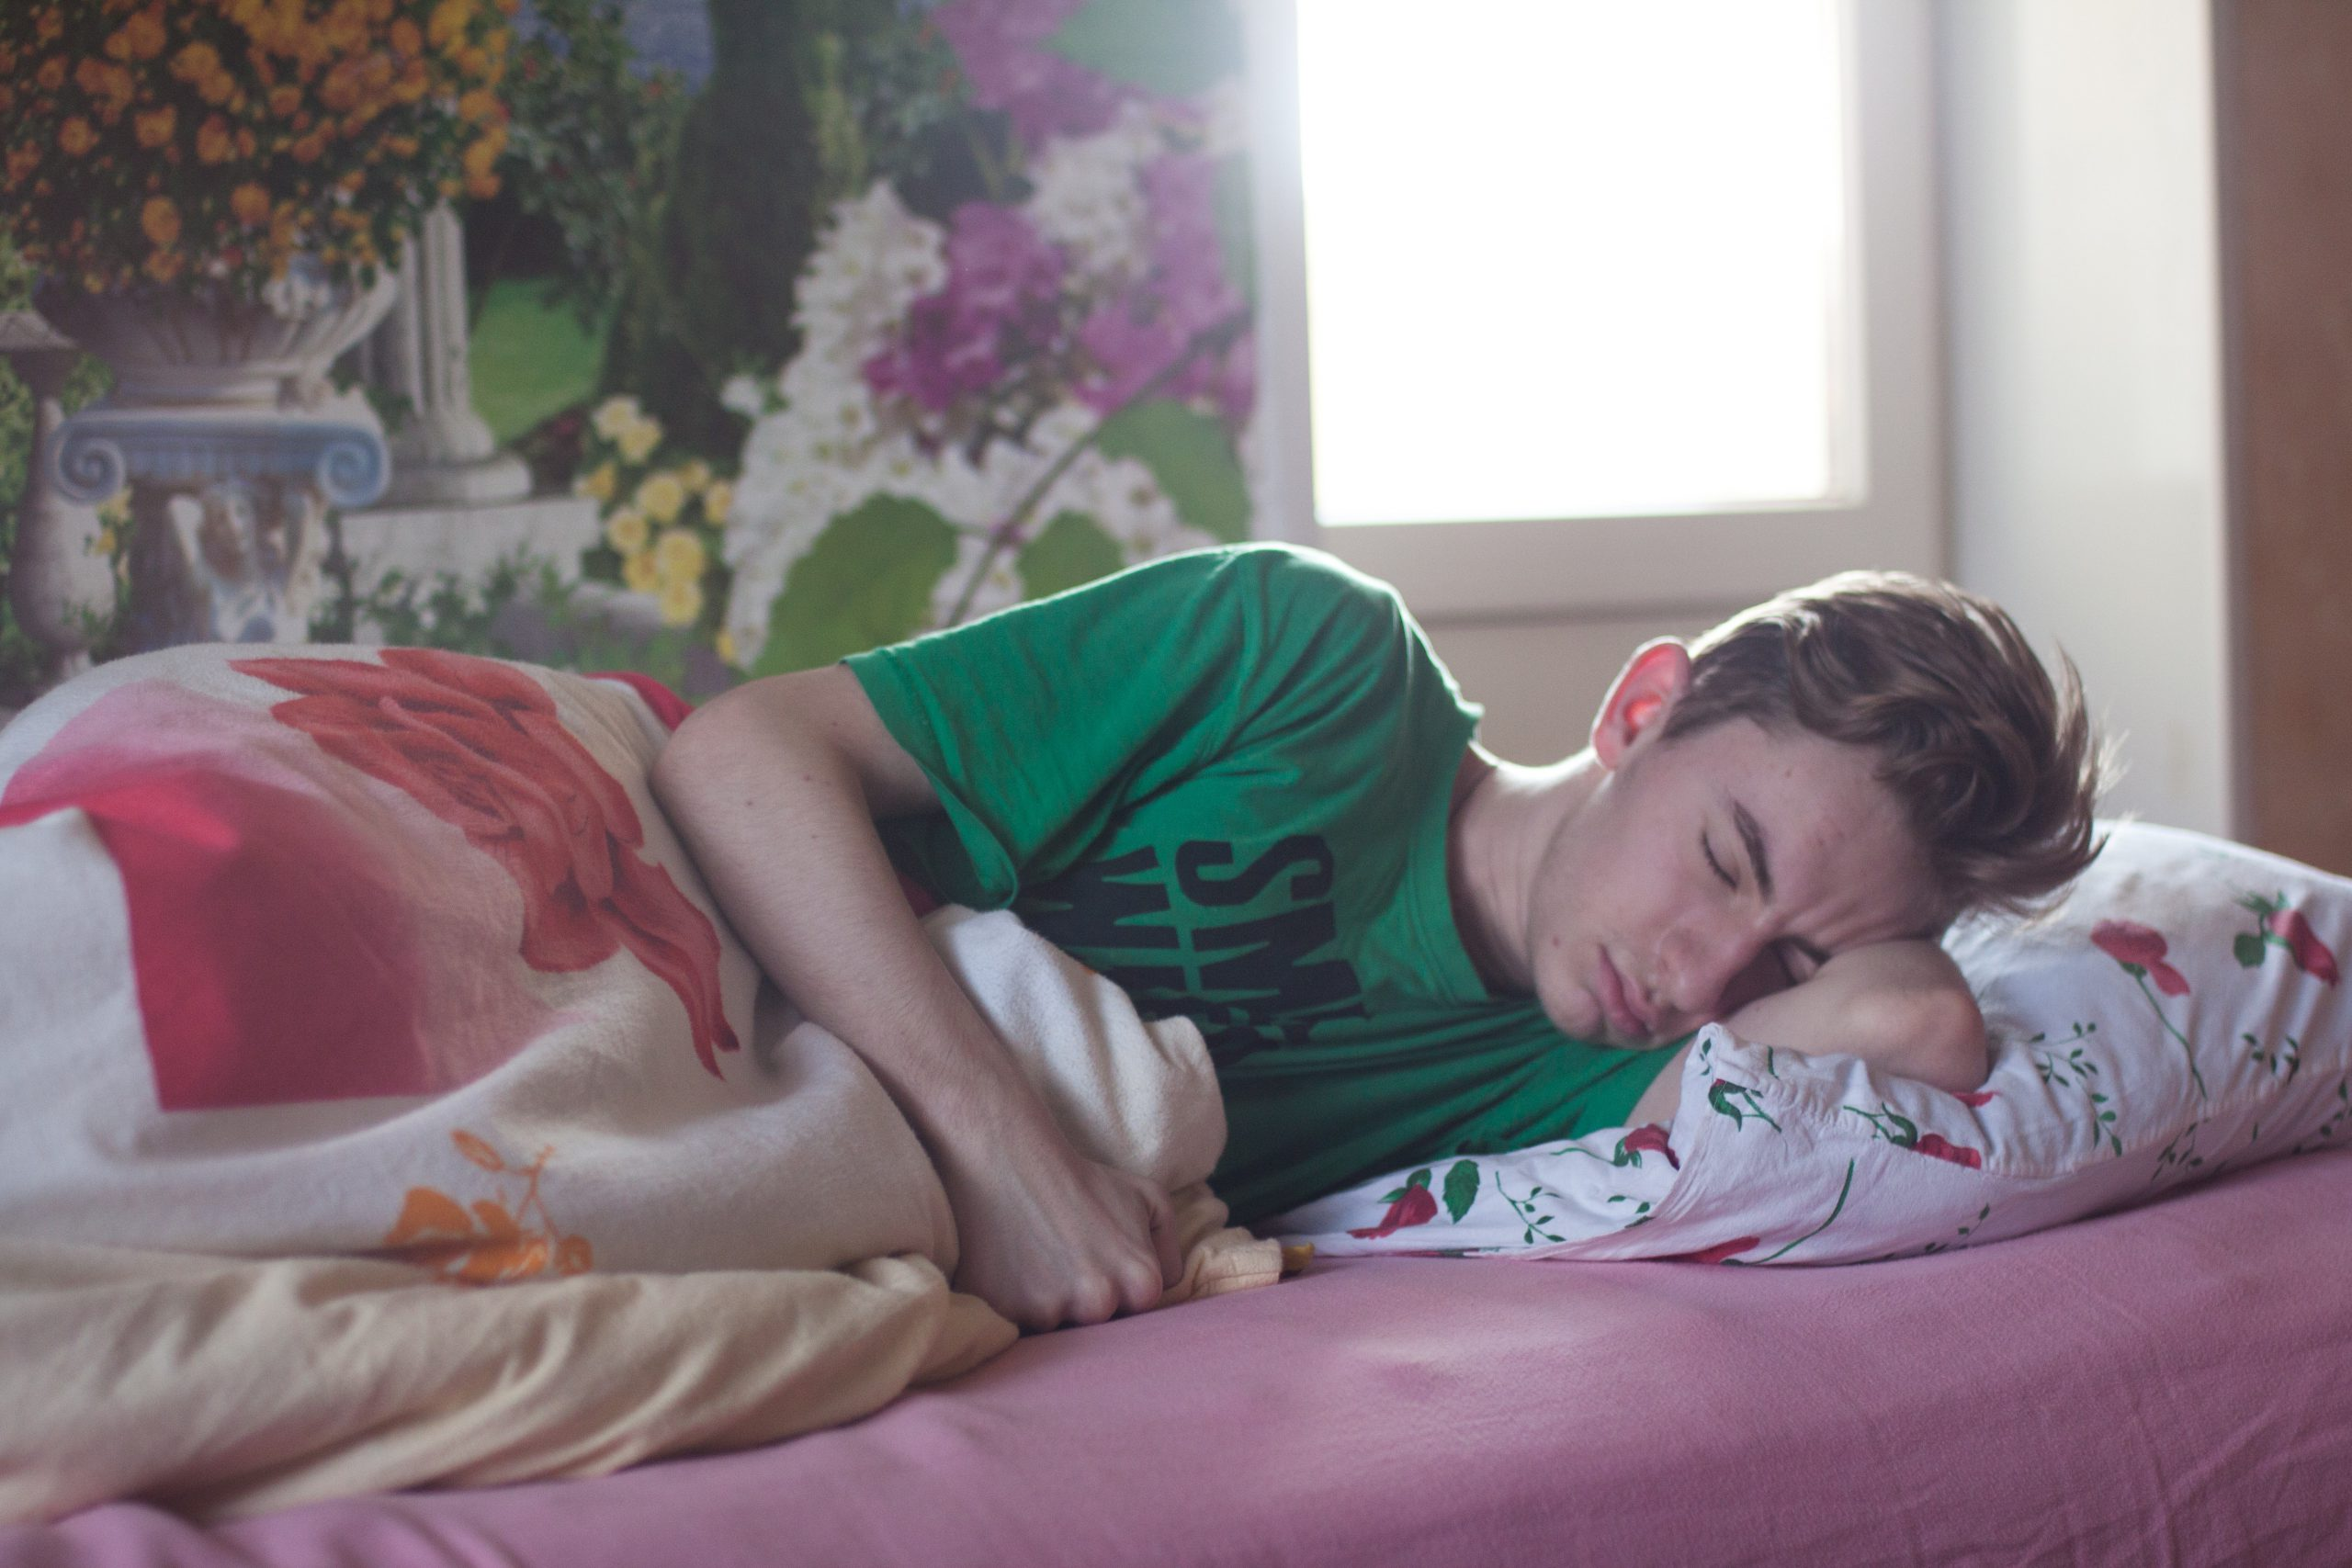 man-wearing-green-printed-crew-neck-shirt-while-sleeping-296817